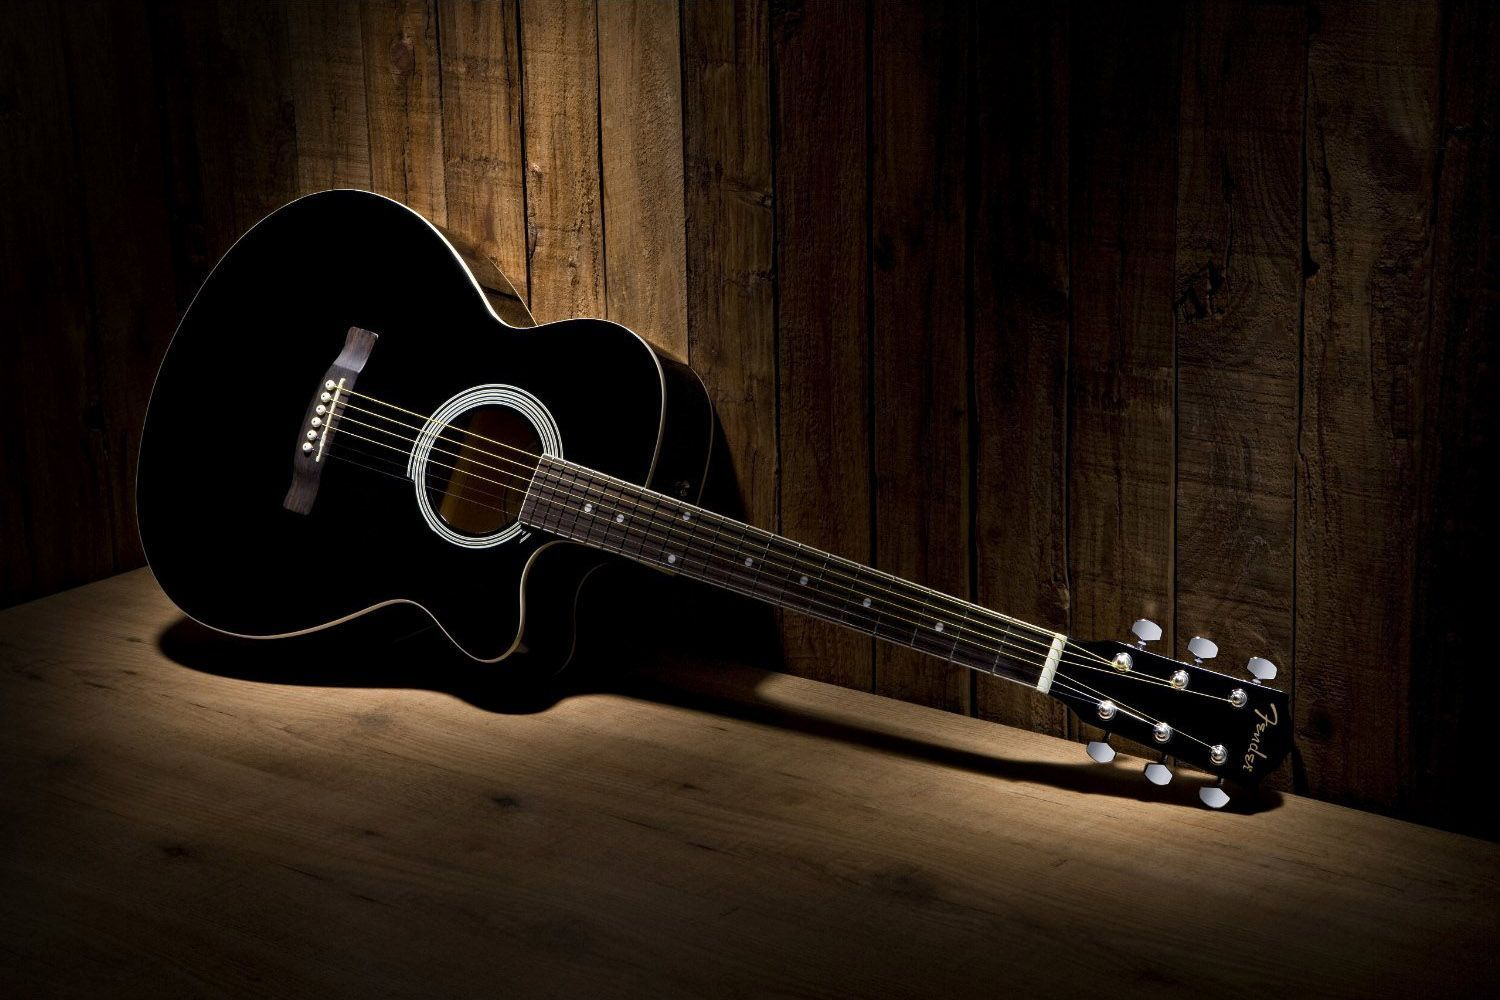 Wallpaper download music - Download Black Acoustic Guitar Wallpaper